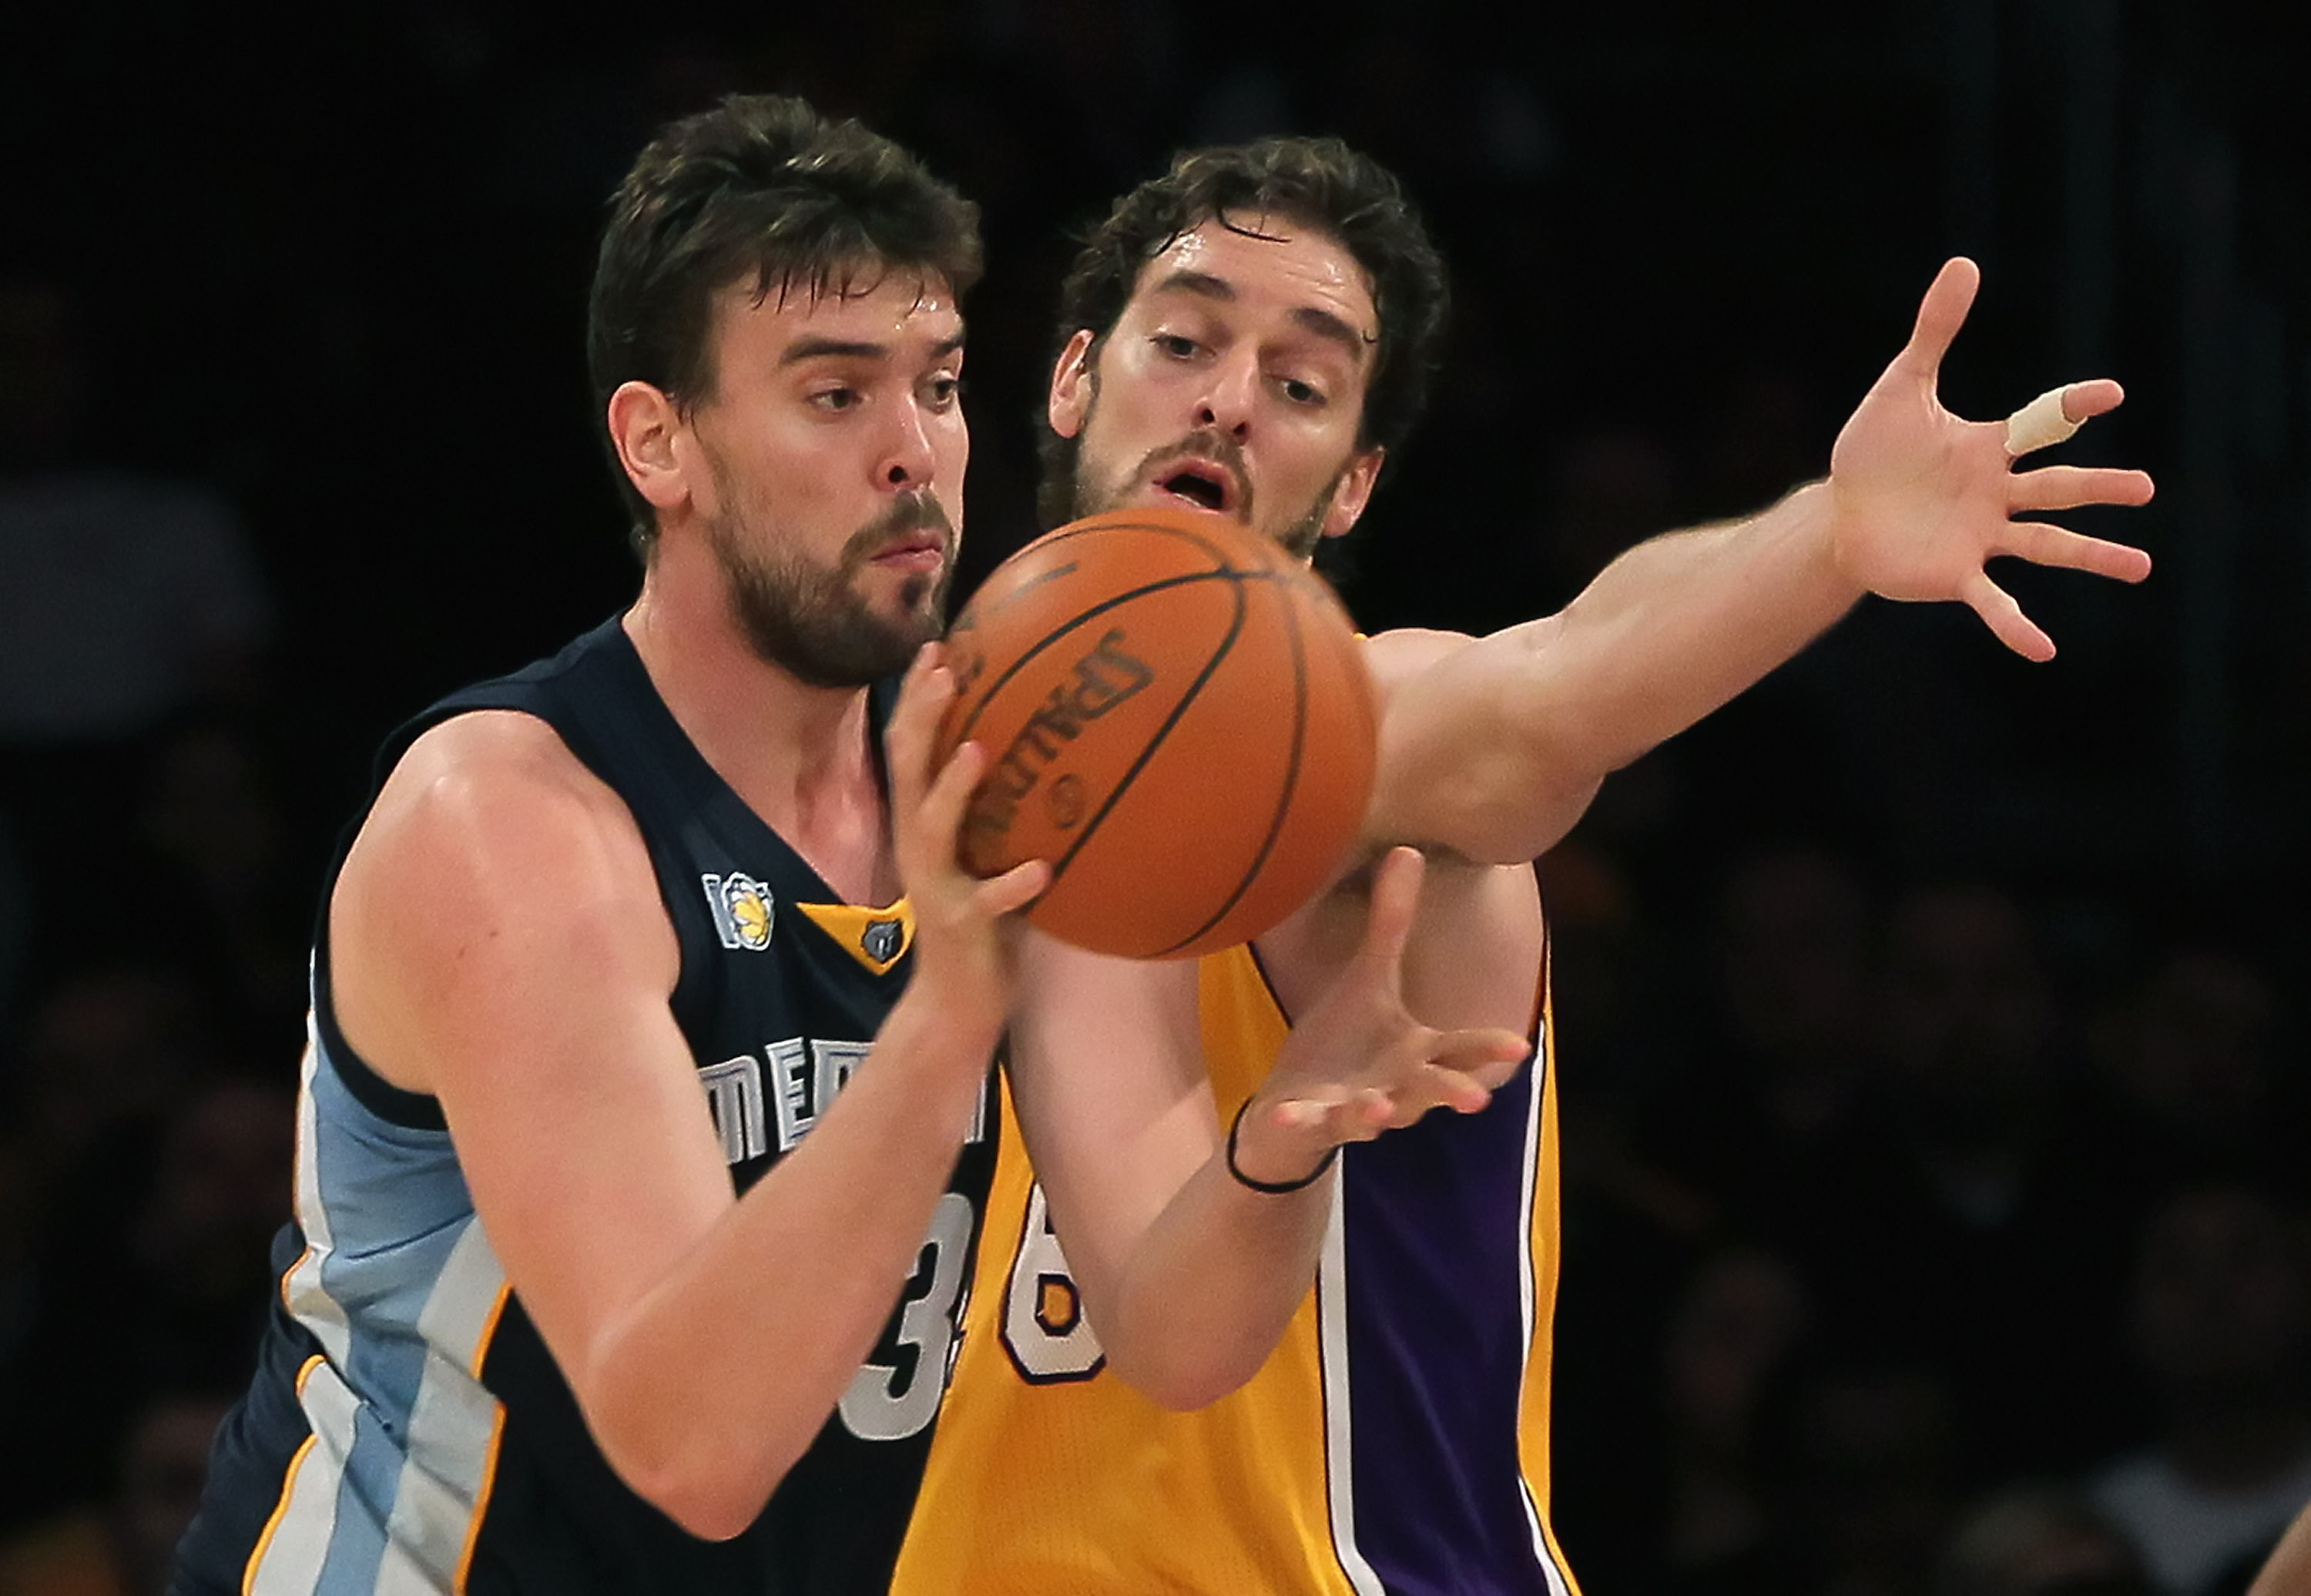 LOS ANGELES, CA - NOVEMBER 02:  Marc Gasol #33 of the Memphis Grizzlies is defended by Pau Gasol #16 of the Los Angeles Lakers during the first quarter at Staples Center on November 2, 2010 in Los Angeles, California. NOTE TO USER: User expressly acknowle